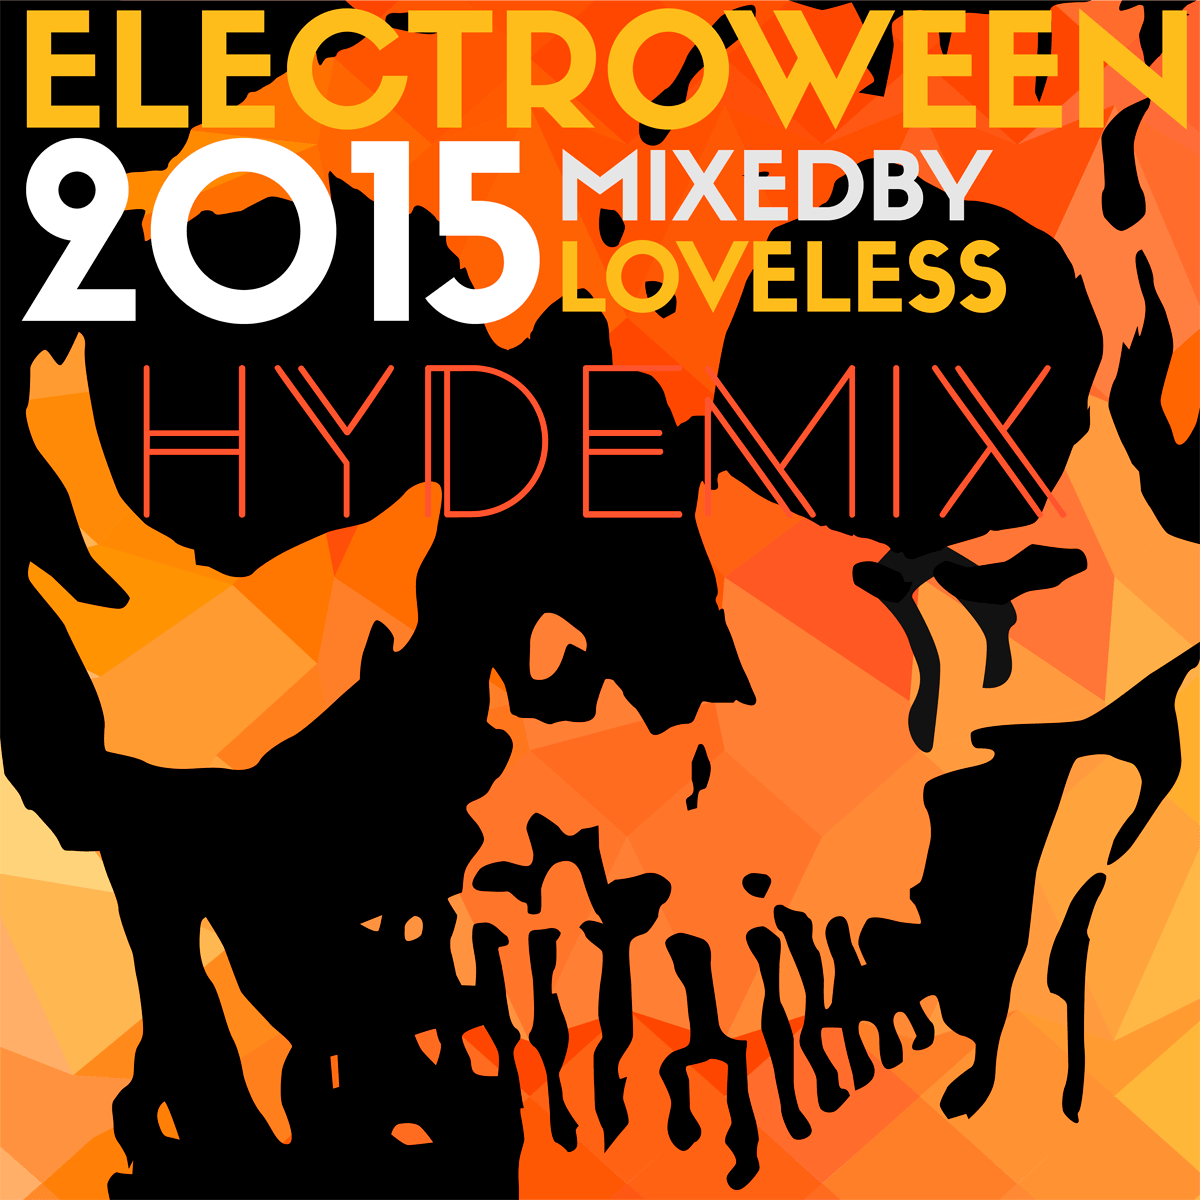 ELECTROWEEN 2015 - Hyde Mix Artwork